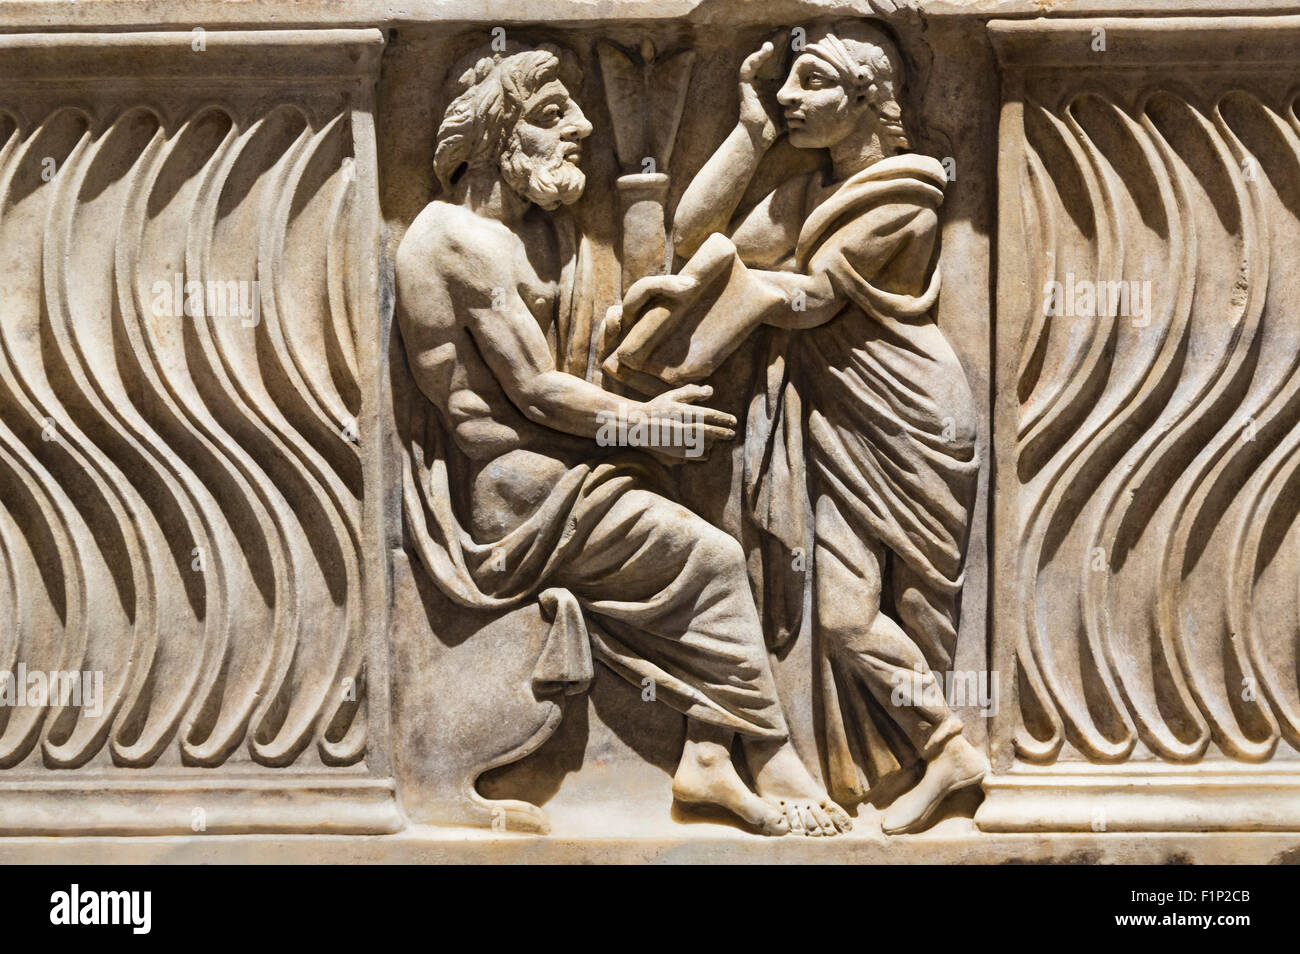 Rome, Italy.  Decoration on a sarcophagus with image of philosopher and muse. Late 3rd-4th century AD. - Stock Image